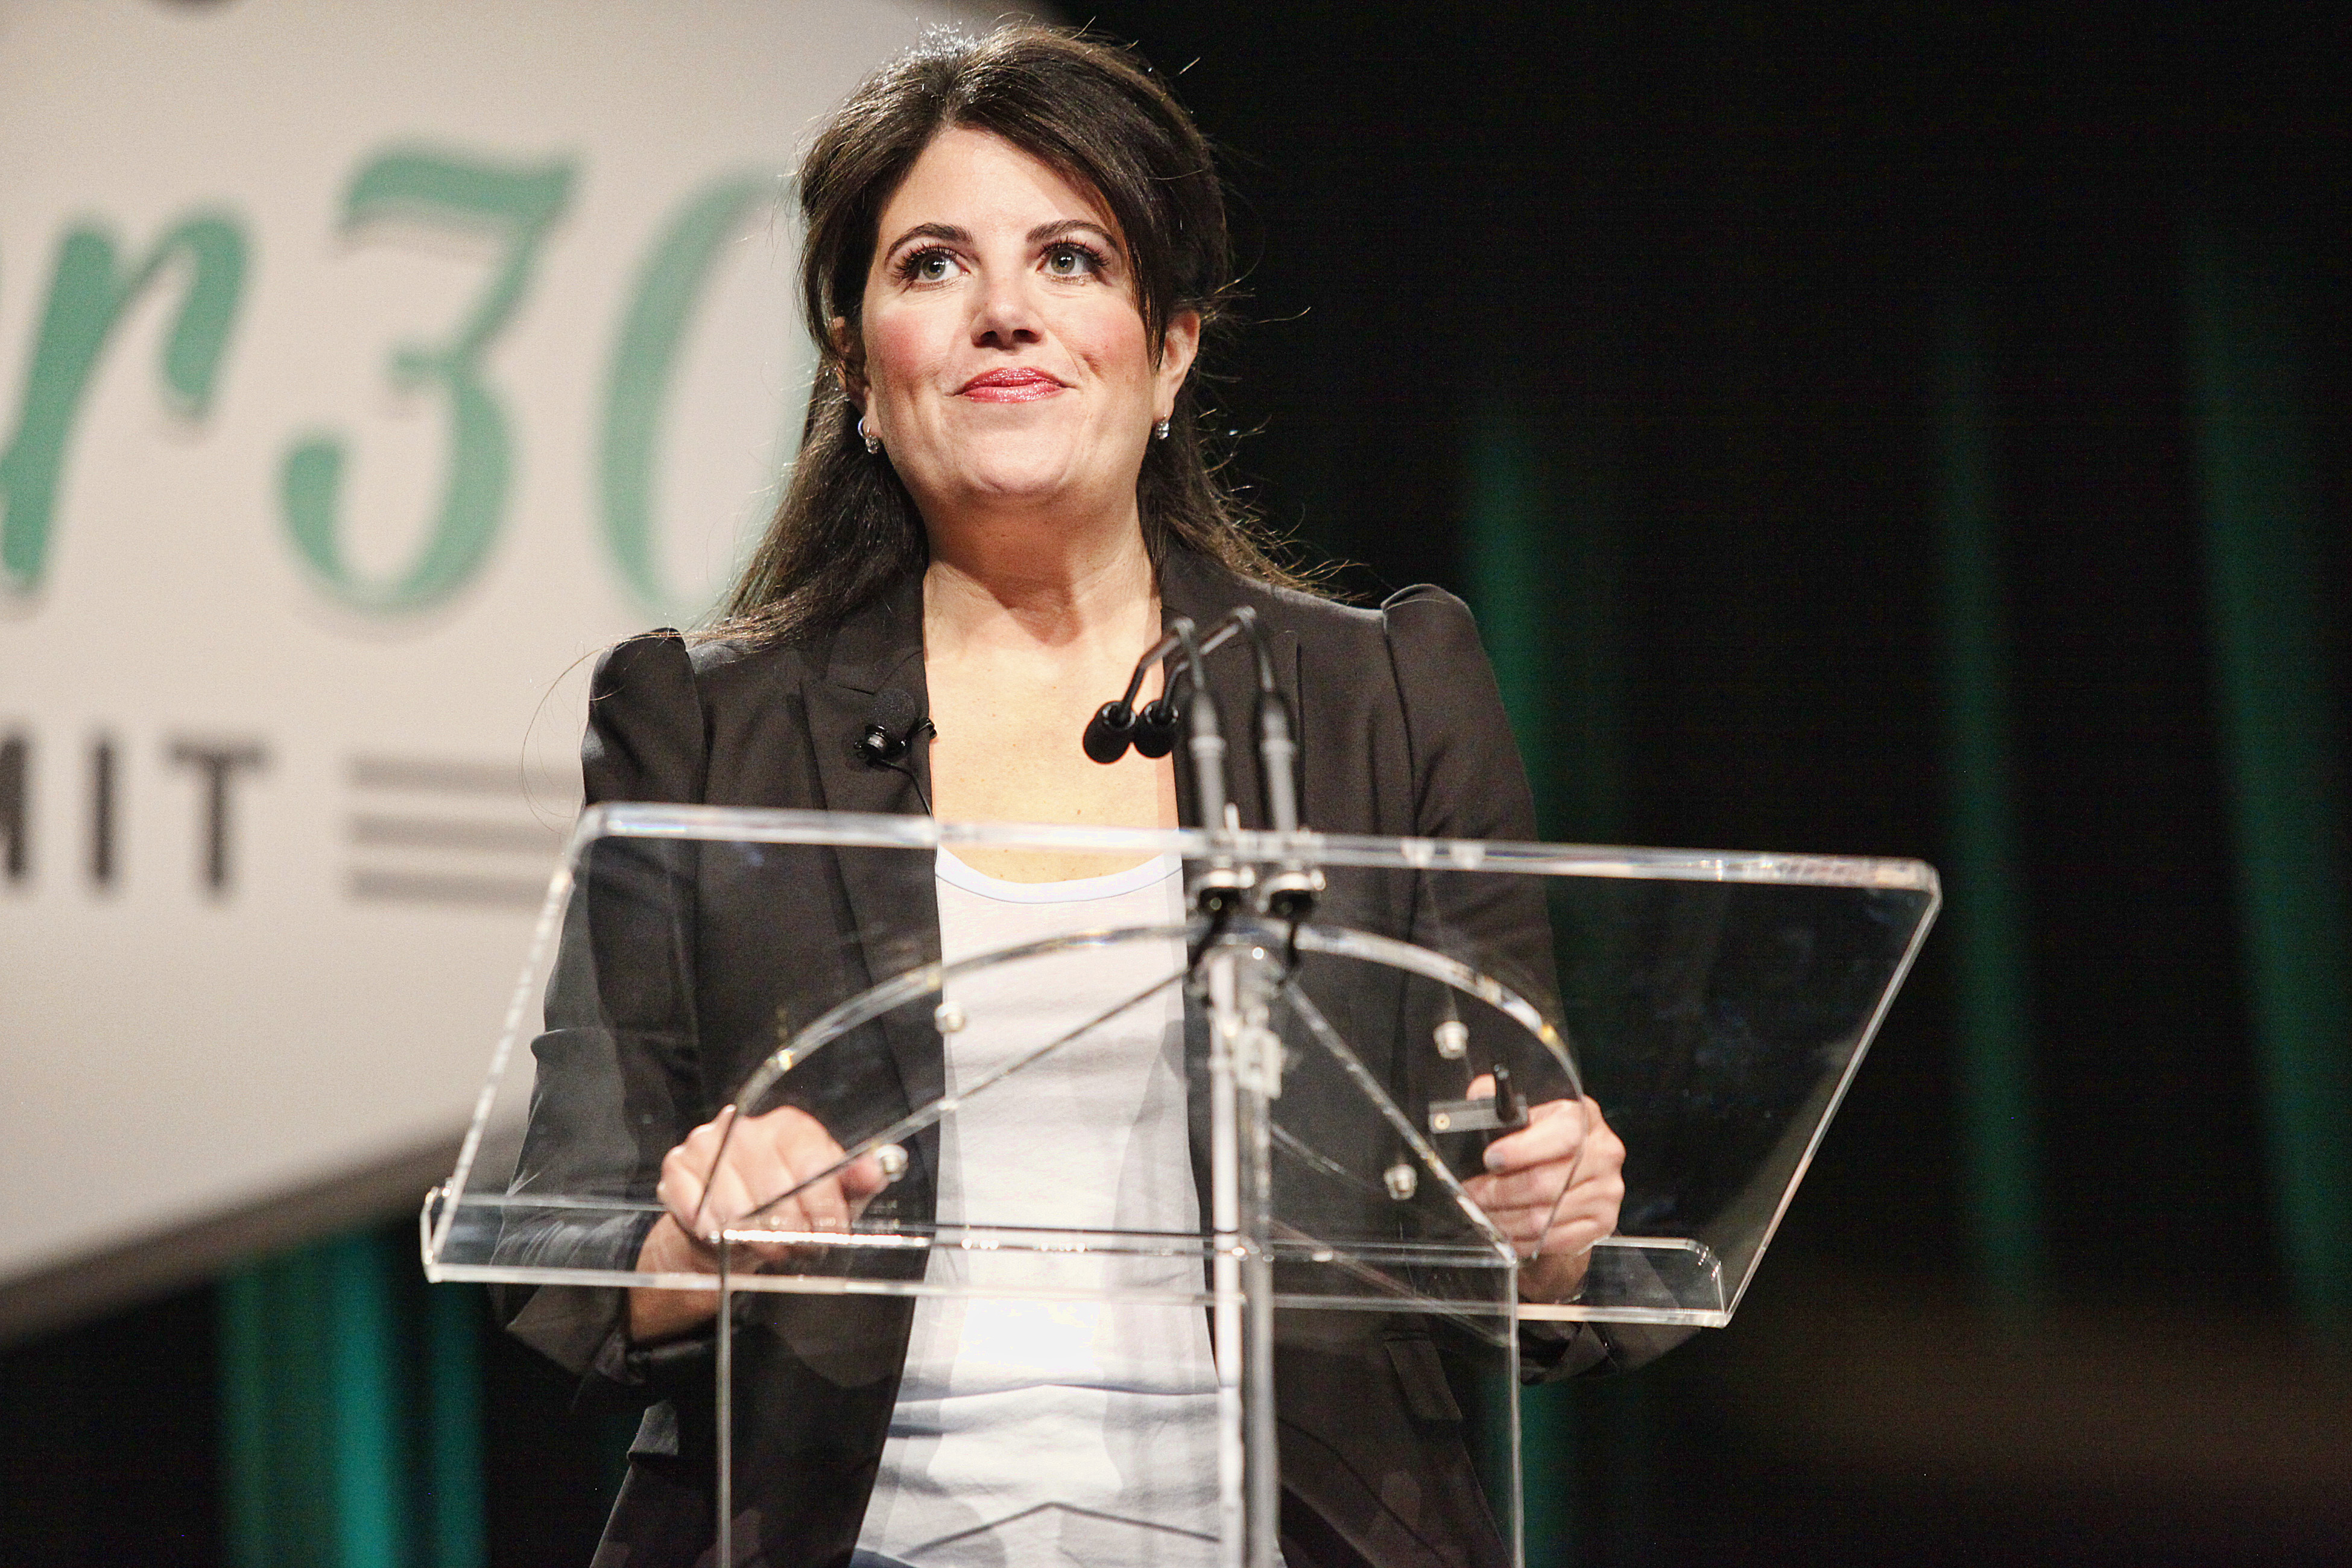 Monica Lewinsky speaks to attendees at Forbes Under 30 Summit at the Convention Center in Philadelphia, Pa on October 20, 2014.